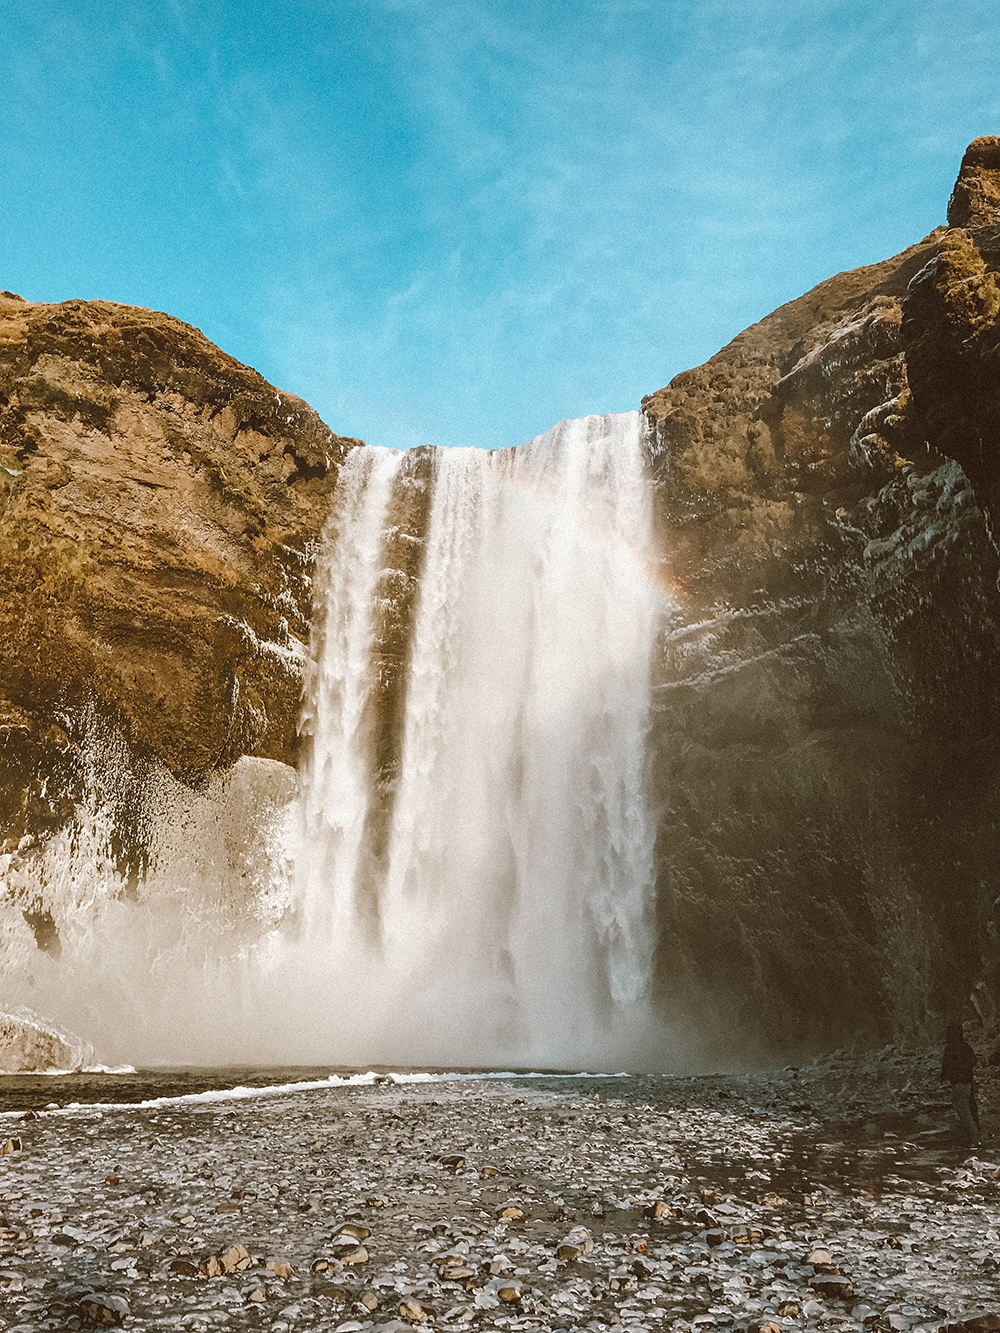 livvyland-blog-olivia-watson-travel-lifestyle-blogger-iceland-road-trip-what-to-do-pack-reykjavik-noken-travel-guide-3-Skógafoss-waterfall